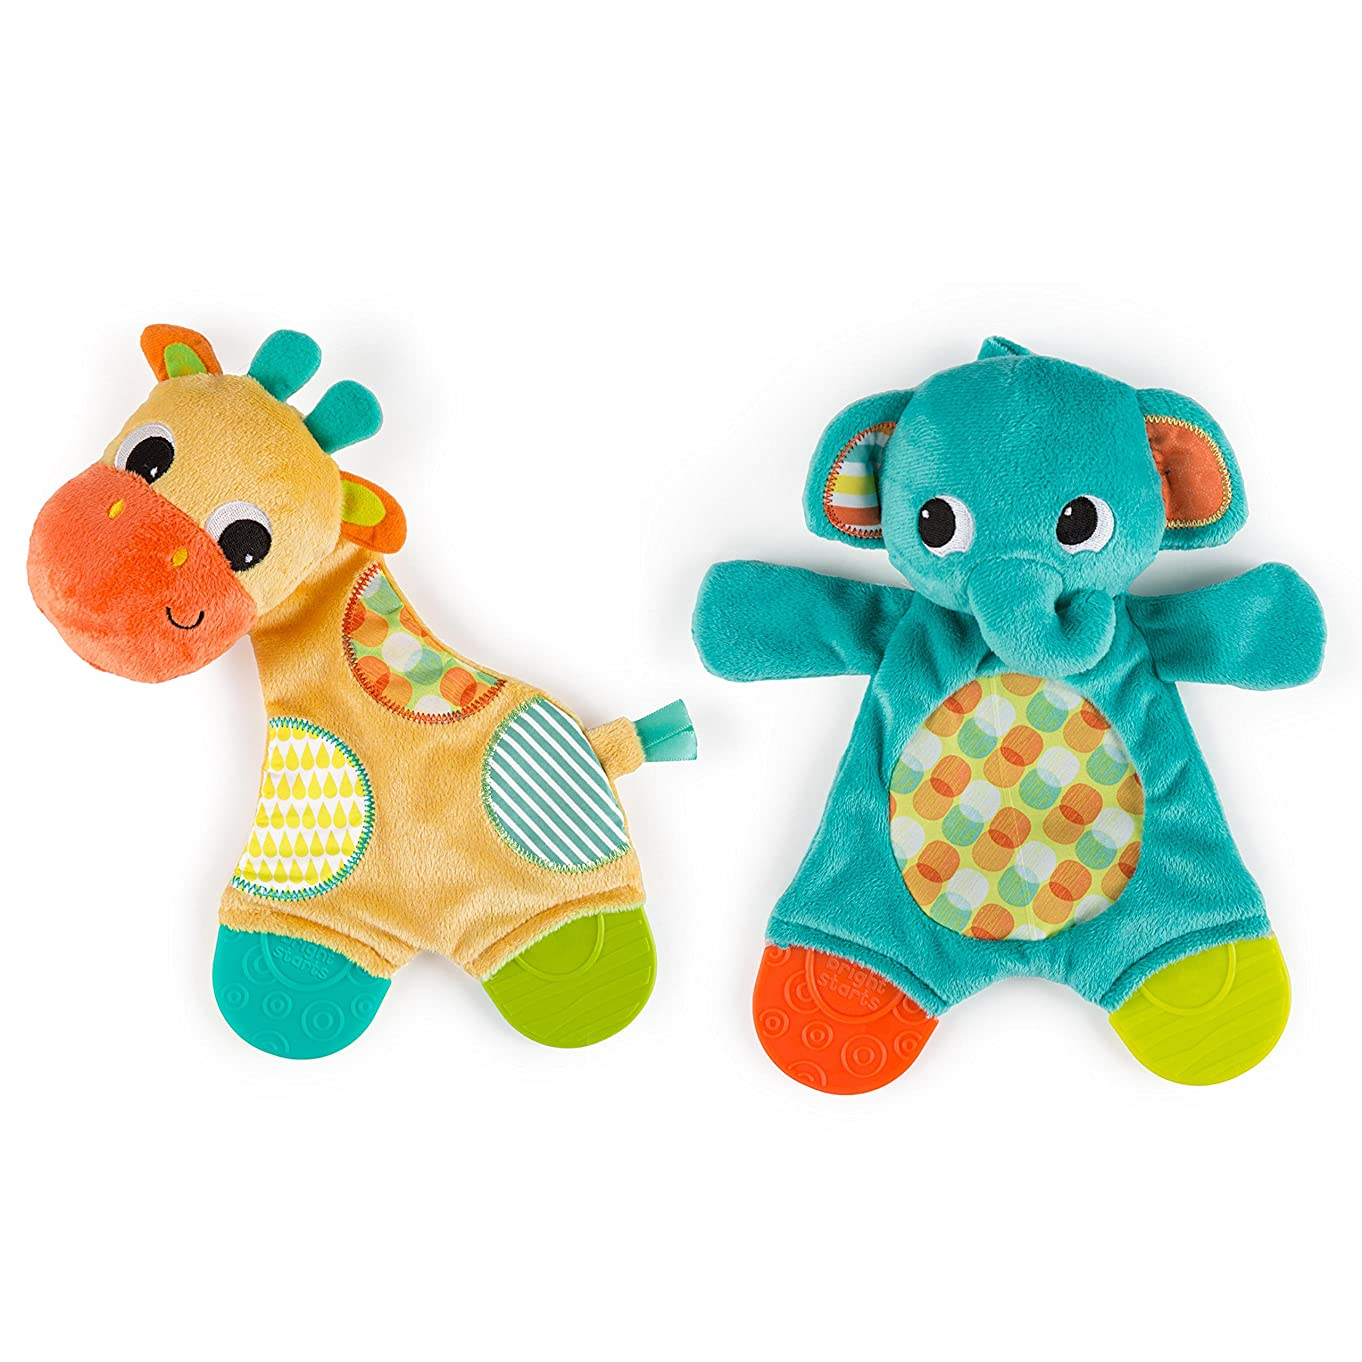 Bright Starts Snuggle & Teethe Toy (One toy, style may vary) s79407356